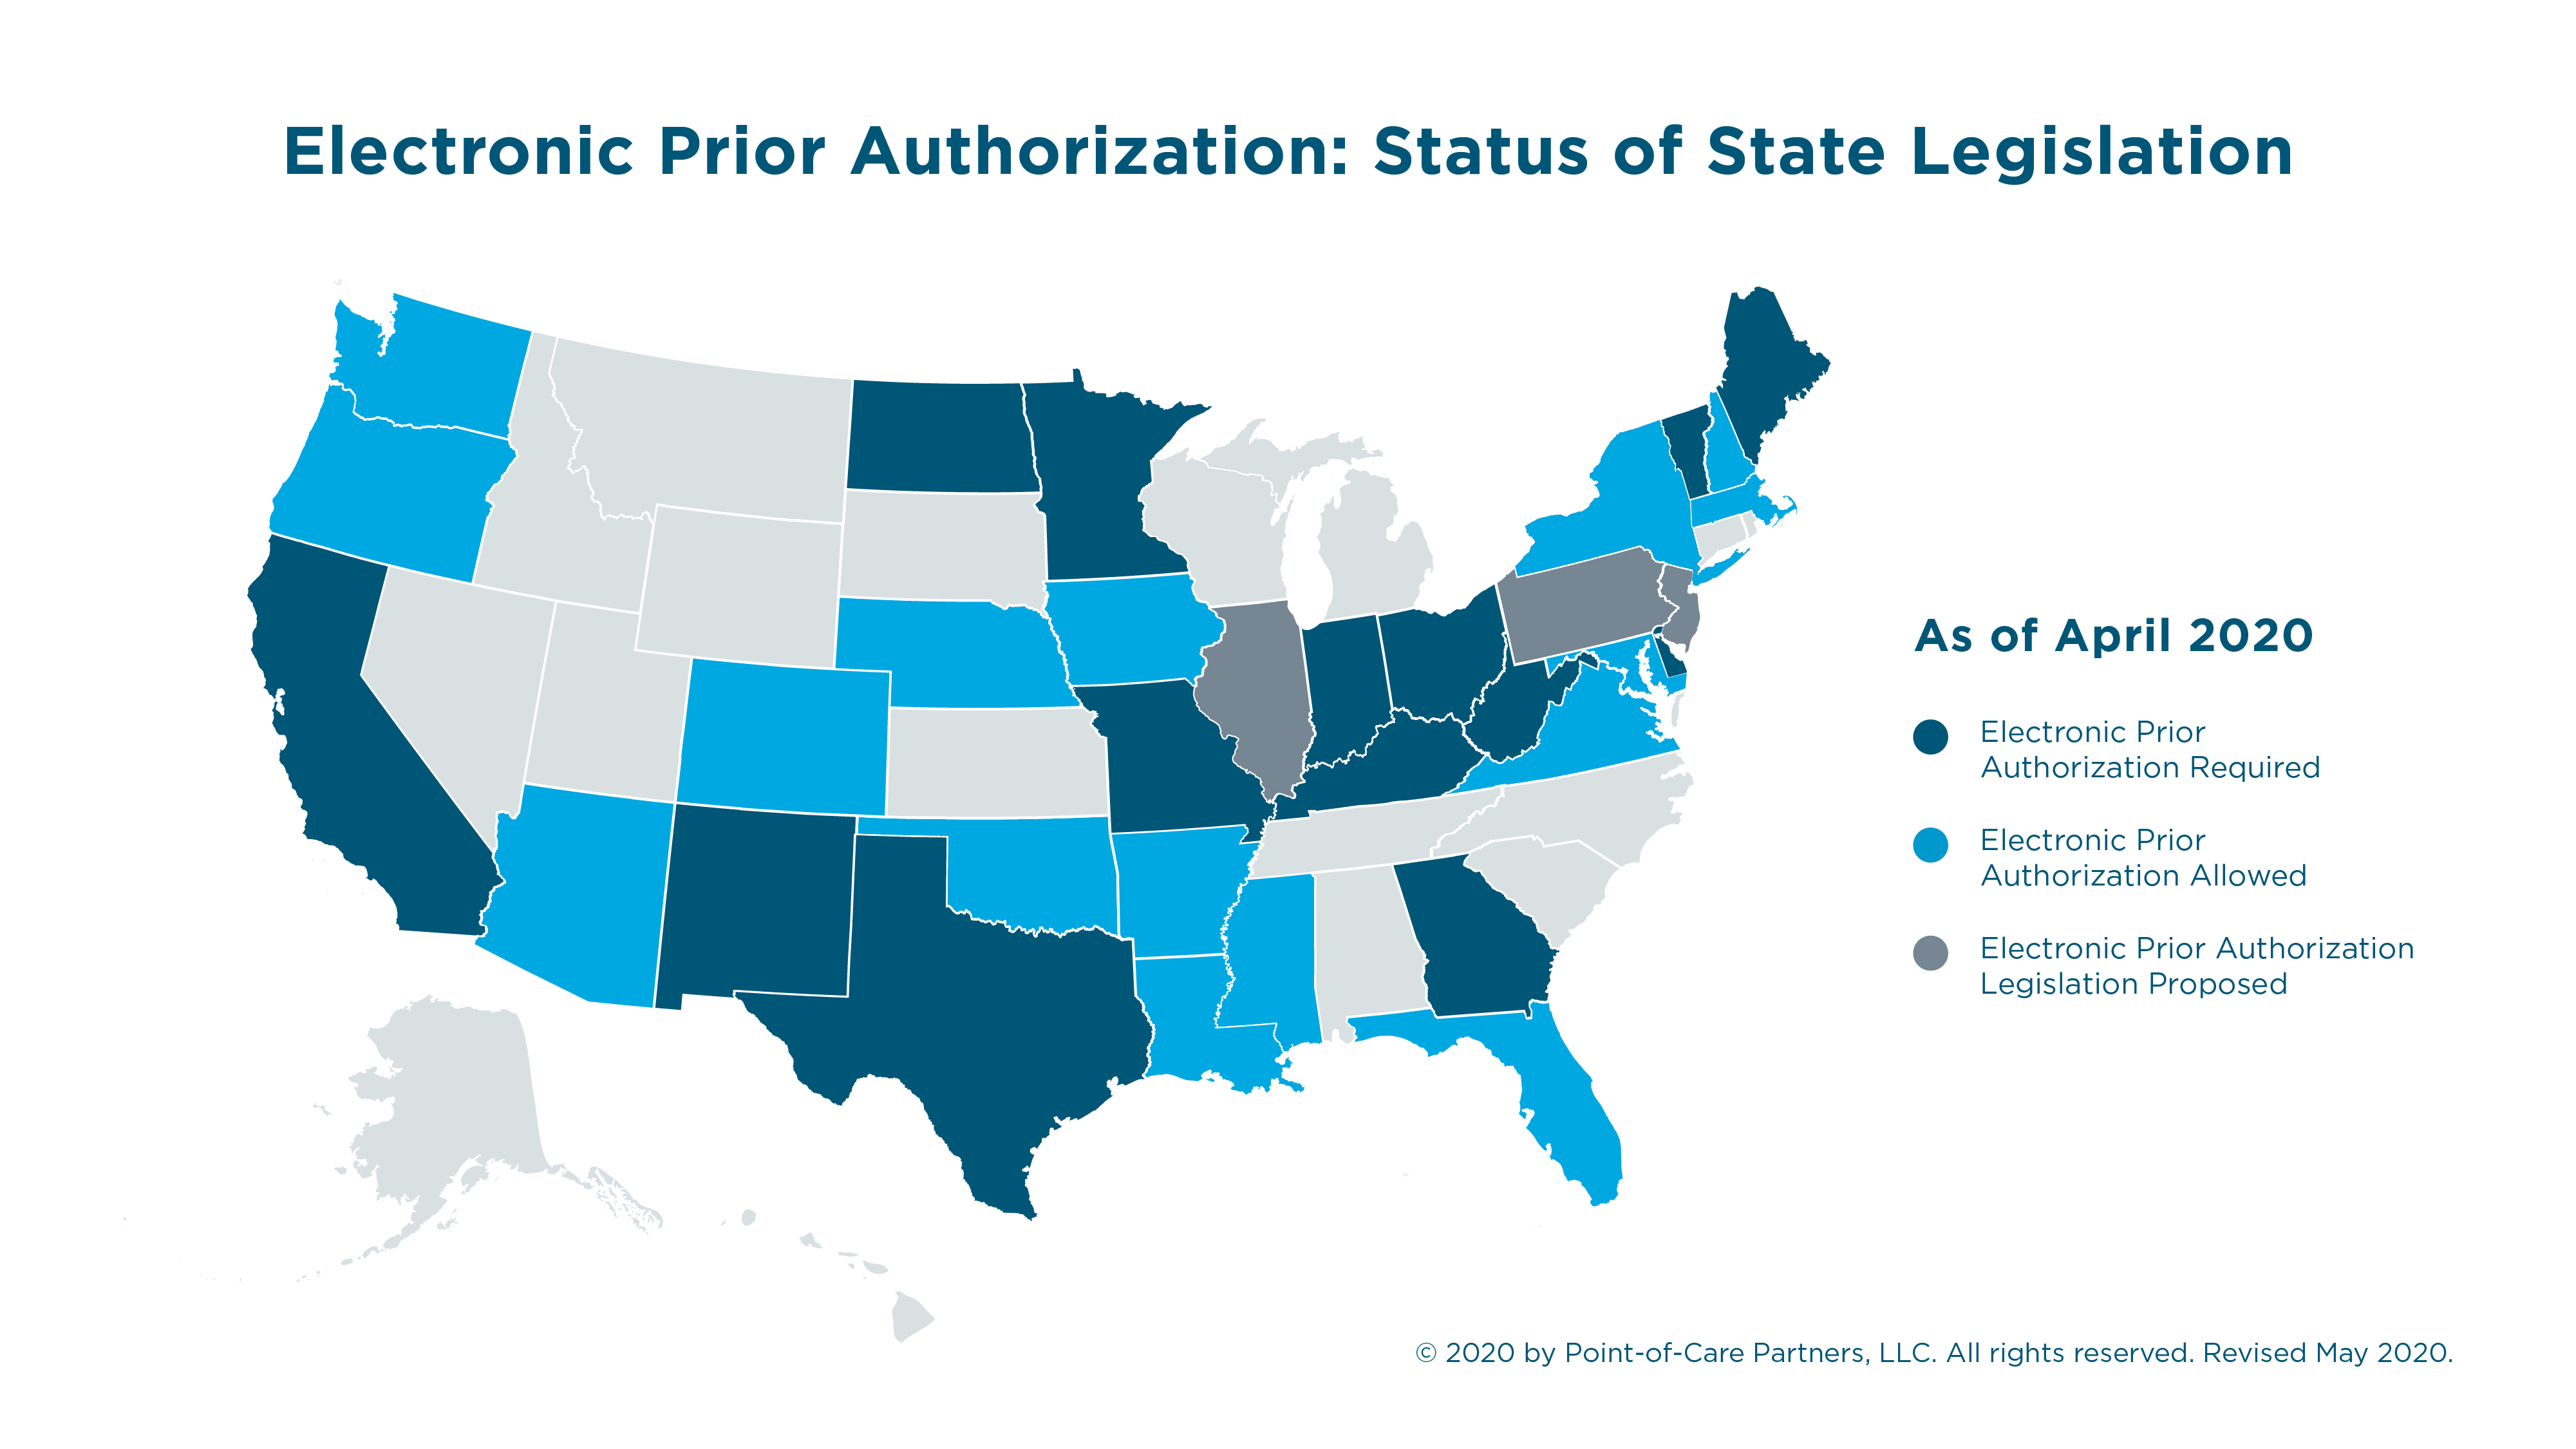 Surescripts 2020 Electronic Prior Authorization Policy Map